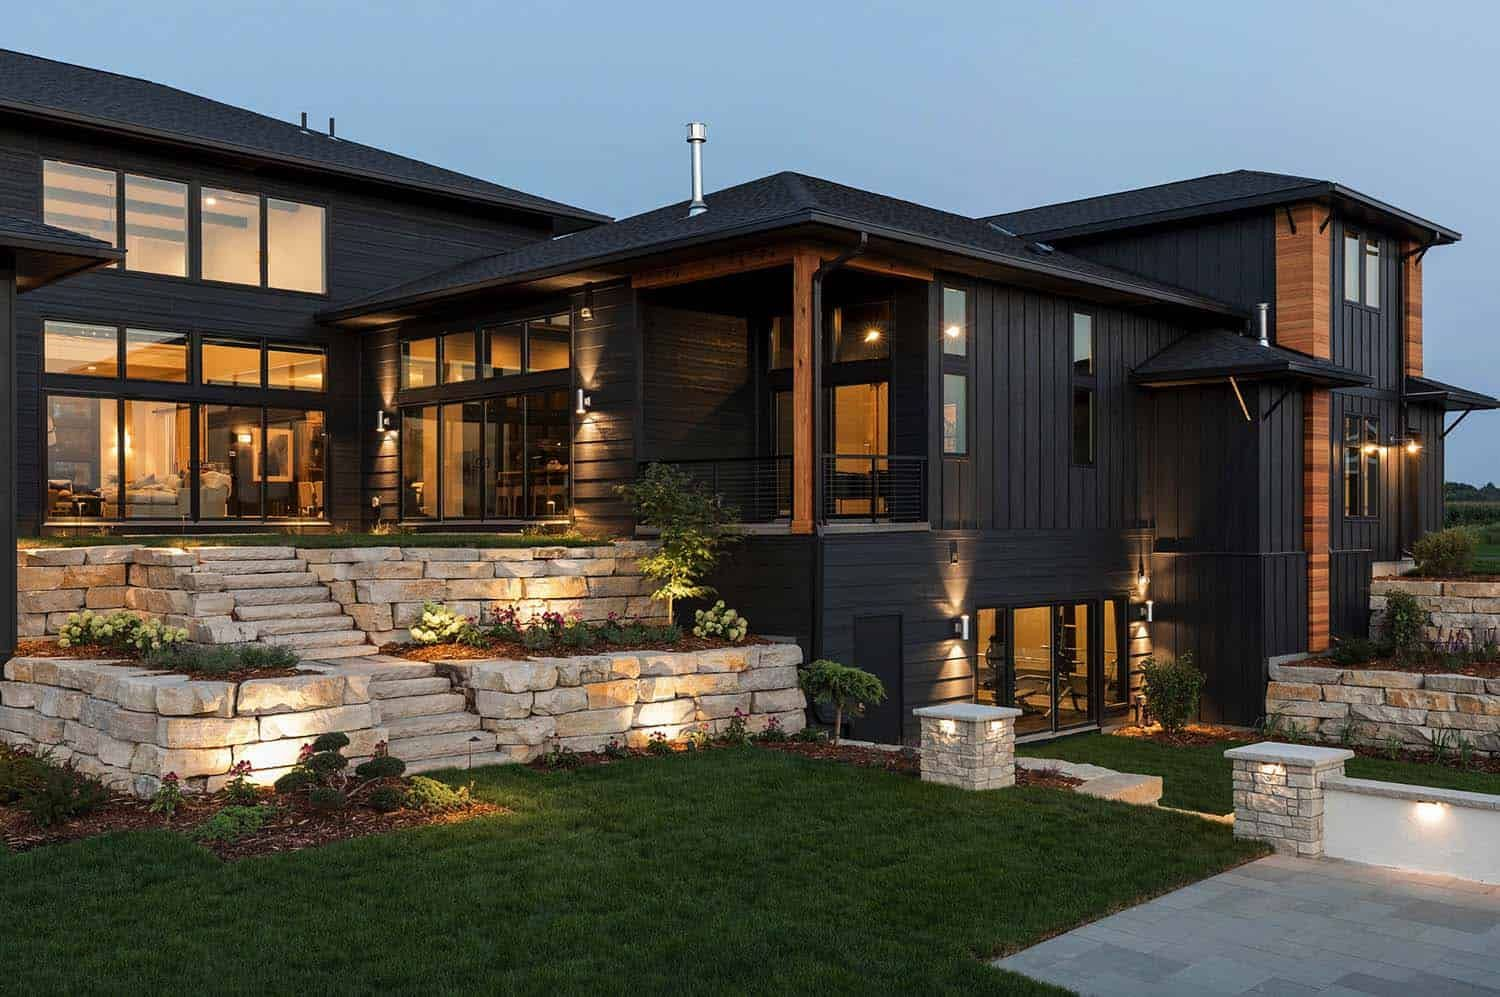 Minnesota Home Features Delightful Mountain Inspired Elements Minnesota Home Modern Barn House Cottage Style Homes